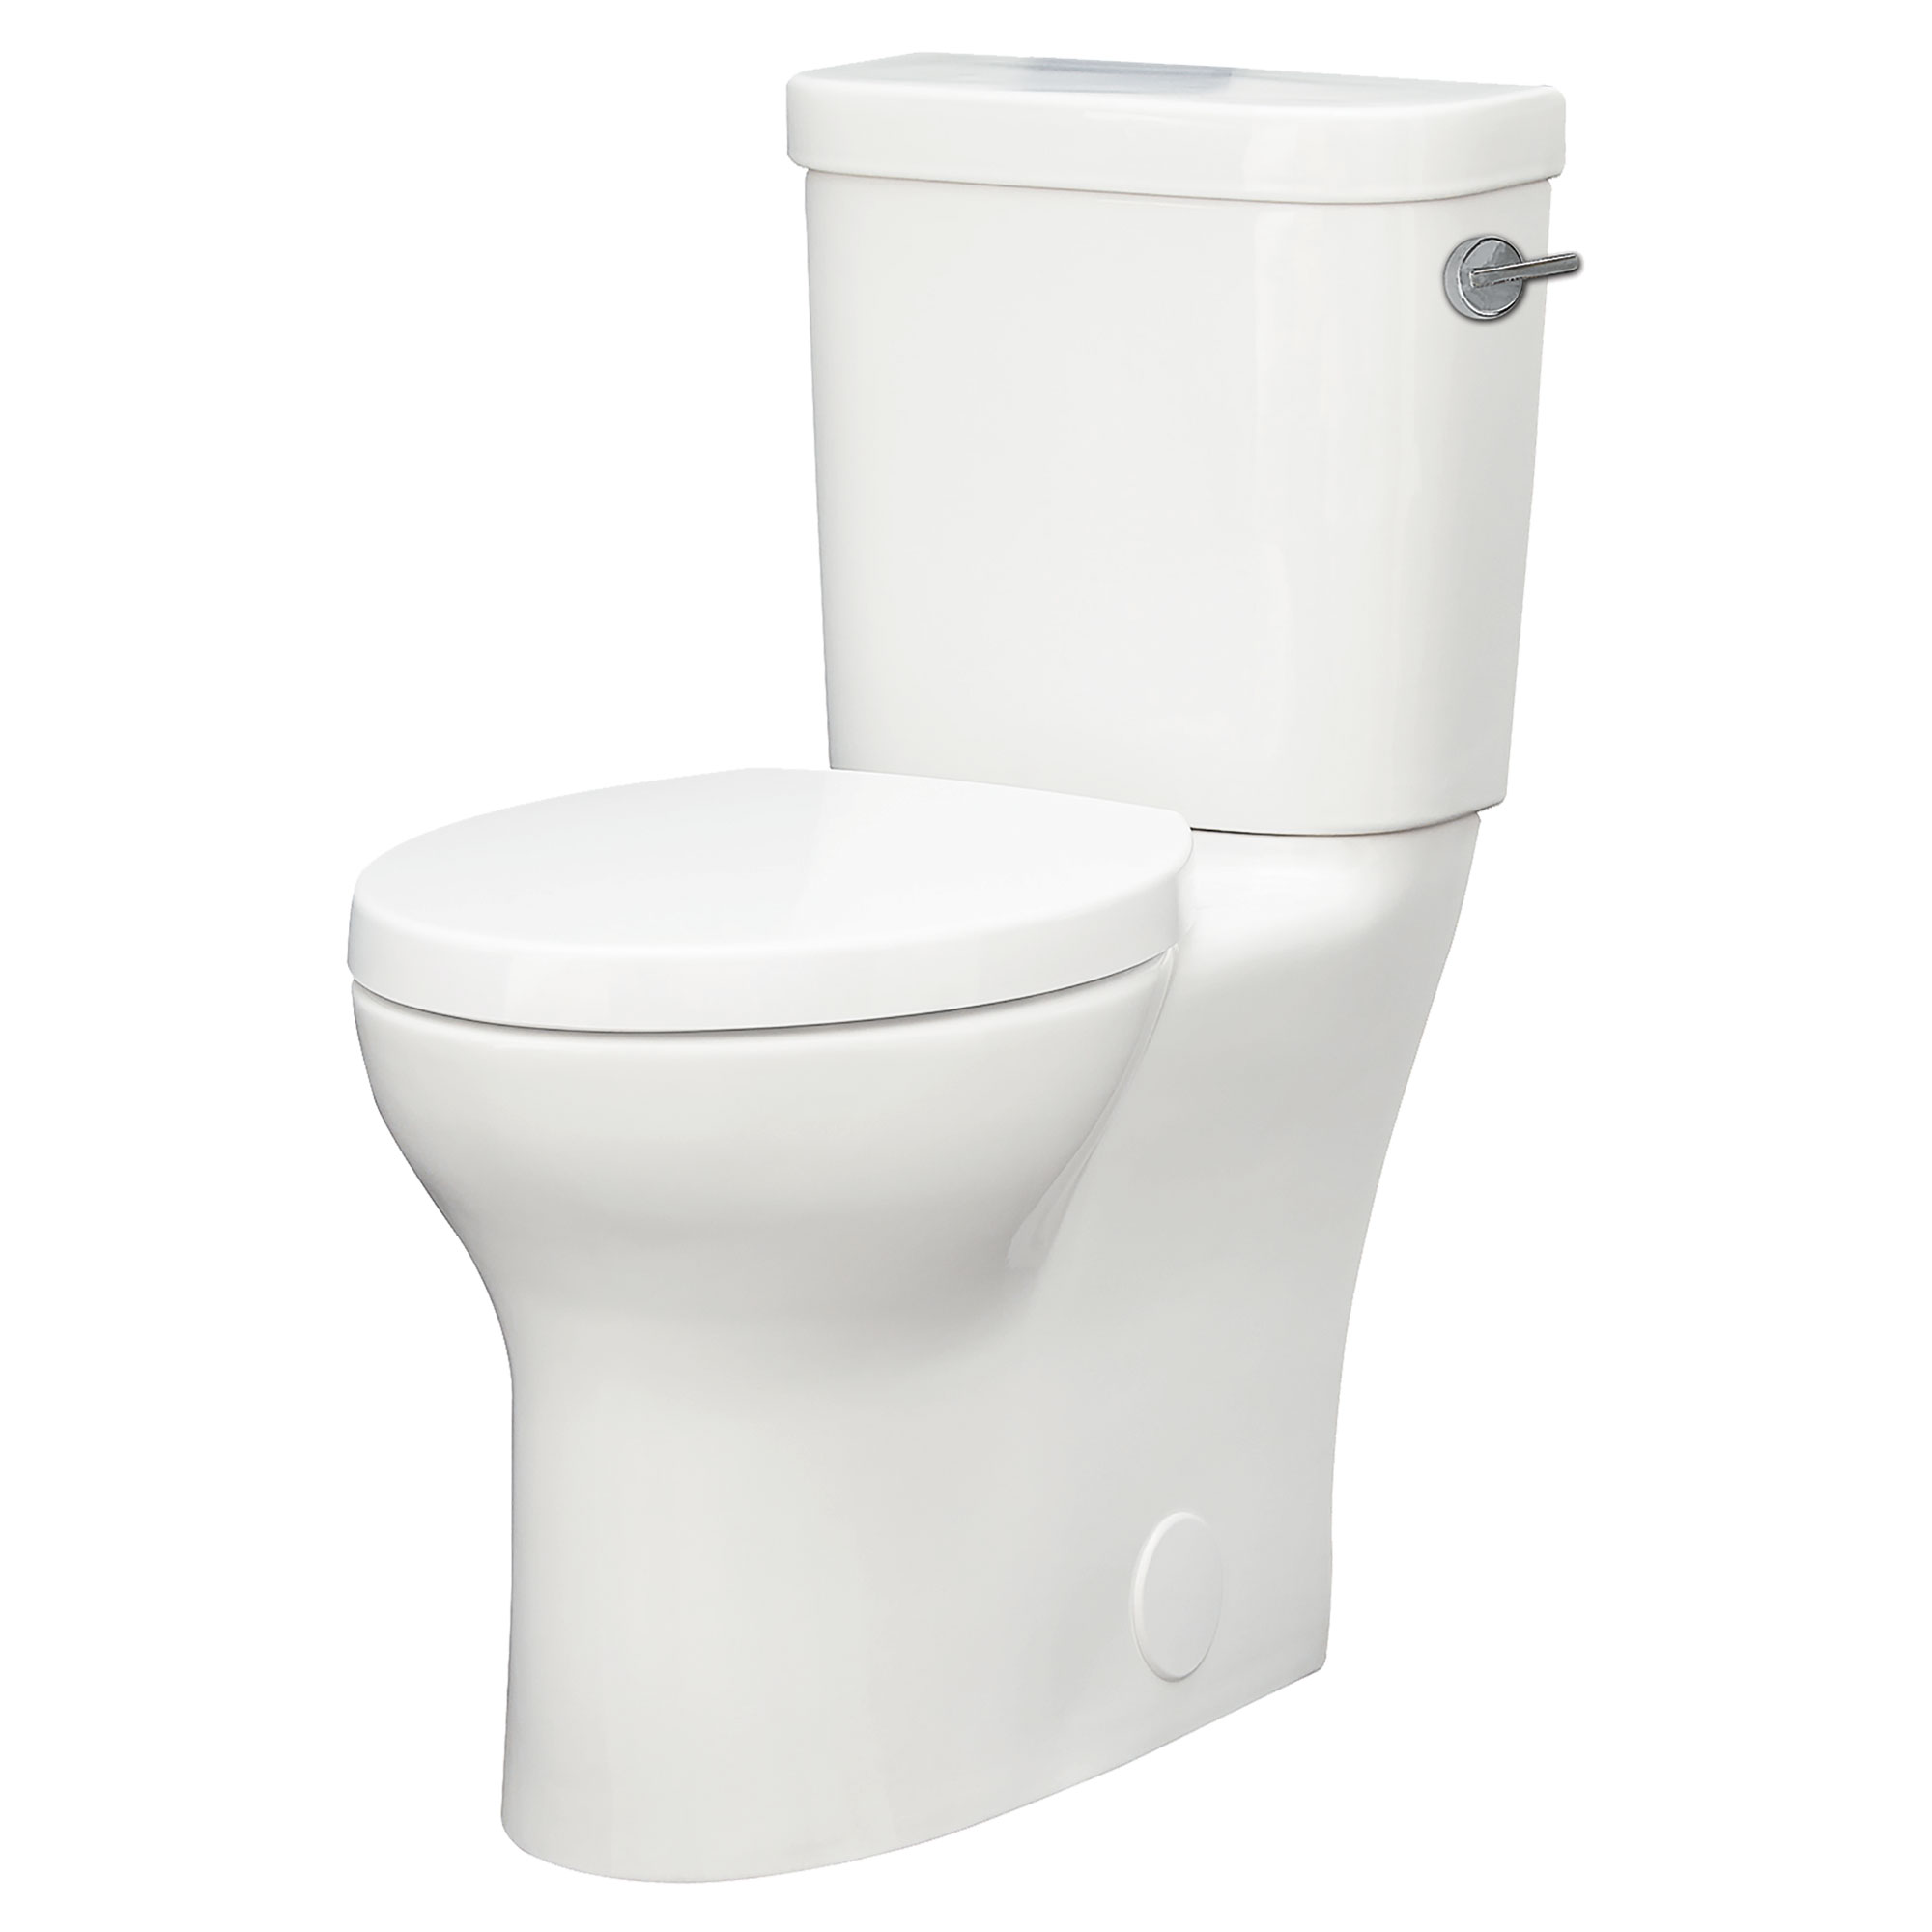 Equility Two-Piece Right Height Elongated Toilet with Right-Hand Trip Lever - Projects Model